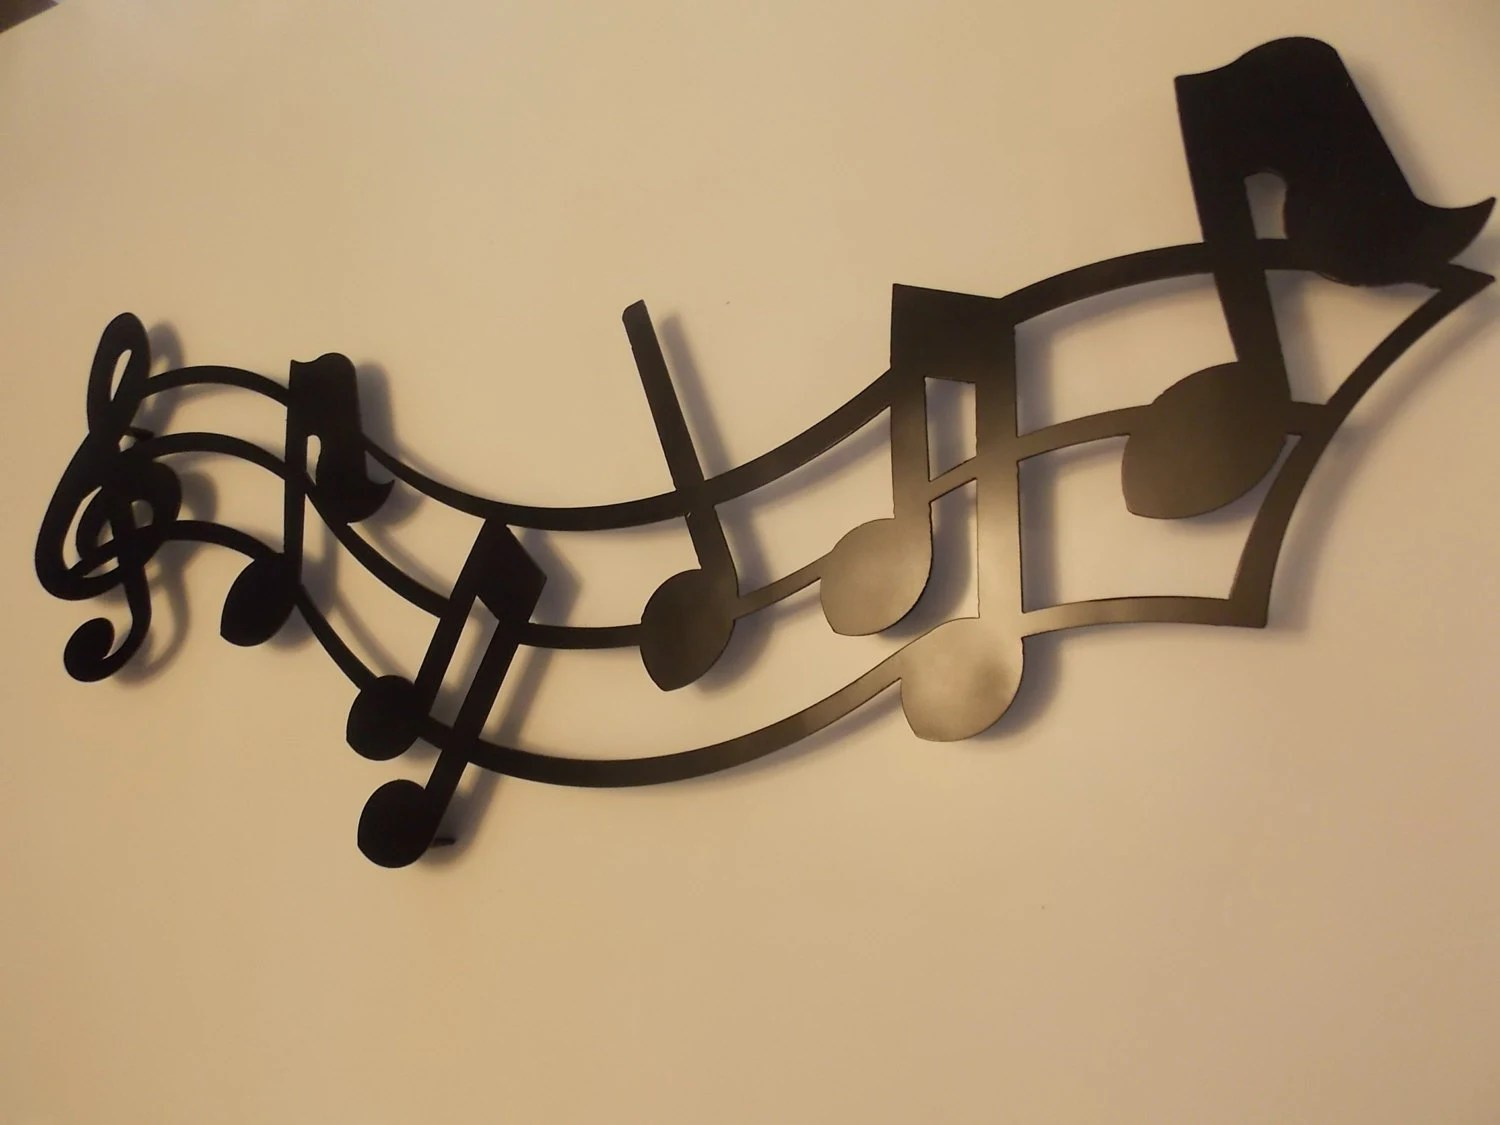 Luxury Musical Wall Art Metal Mold - All About Wallart - adelgazare.info